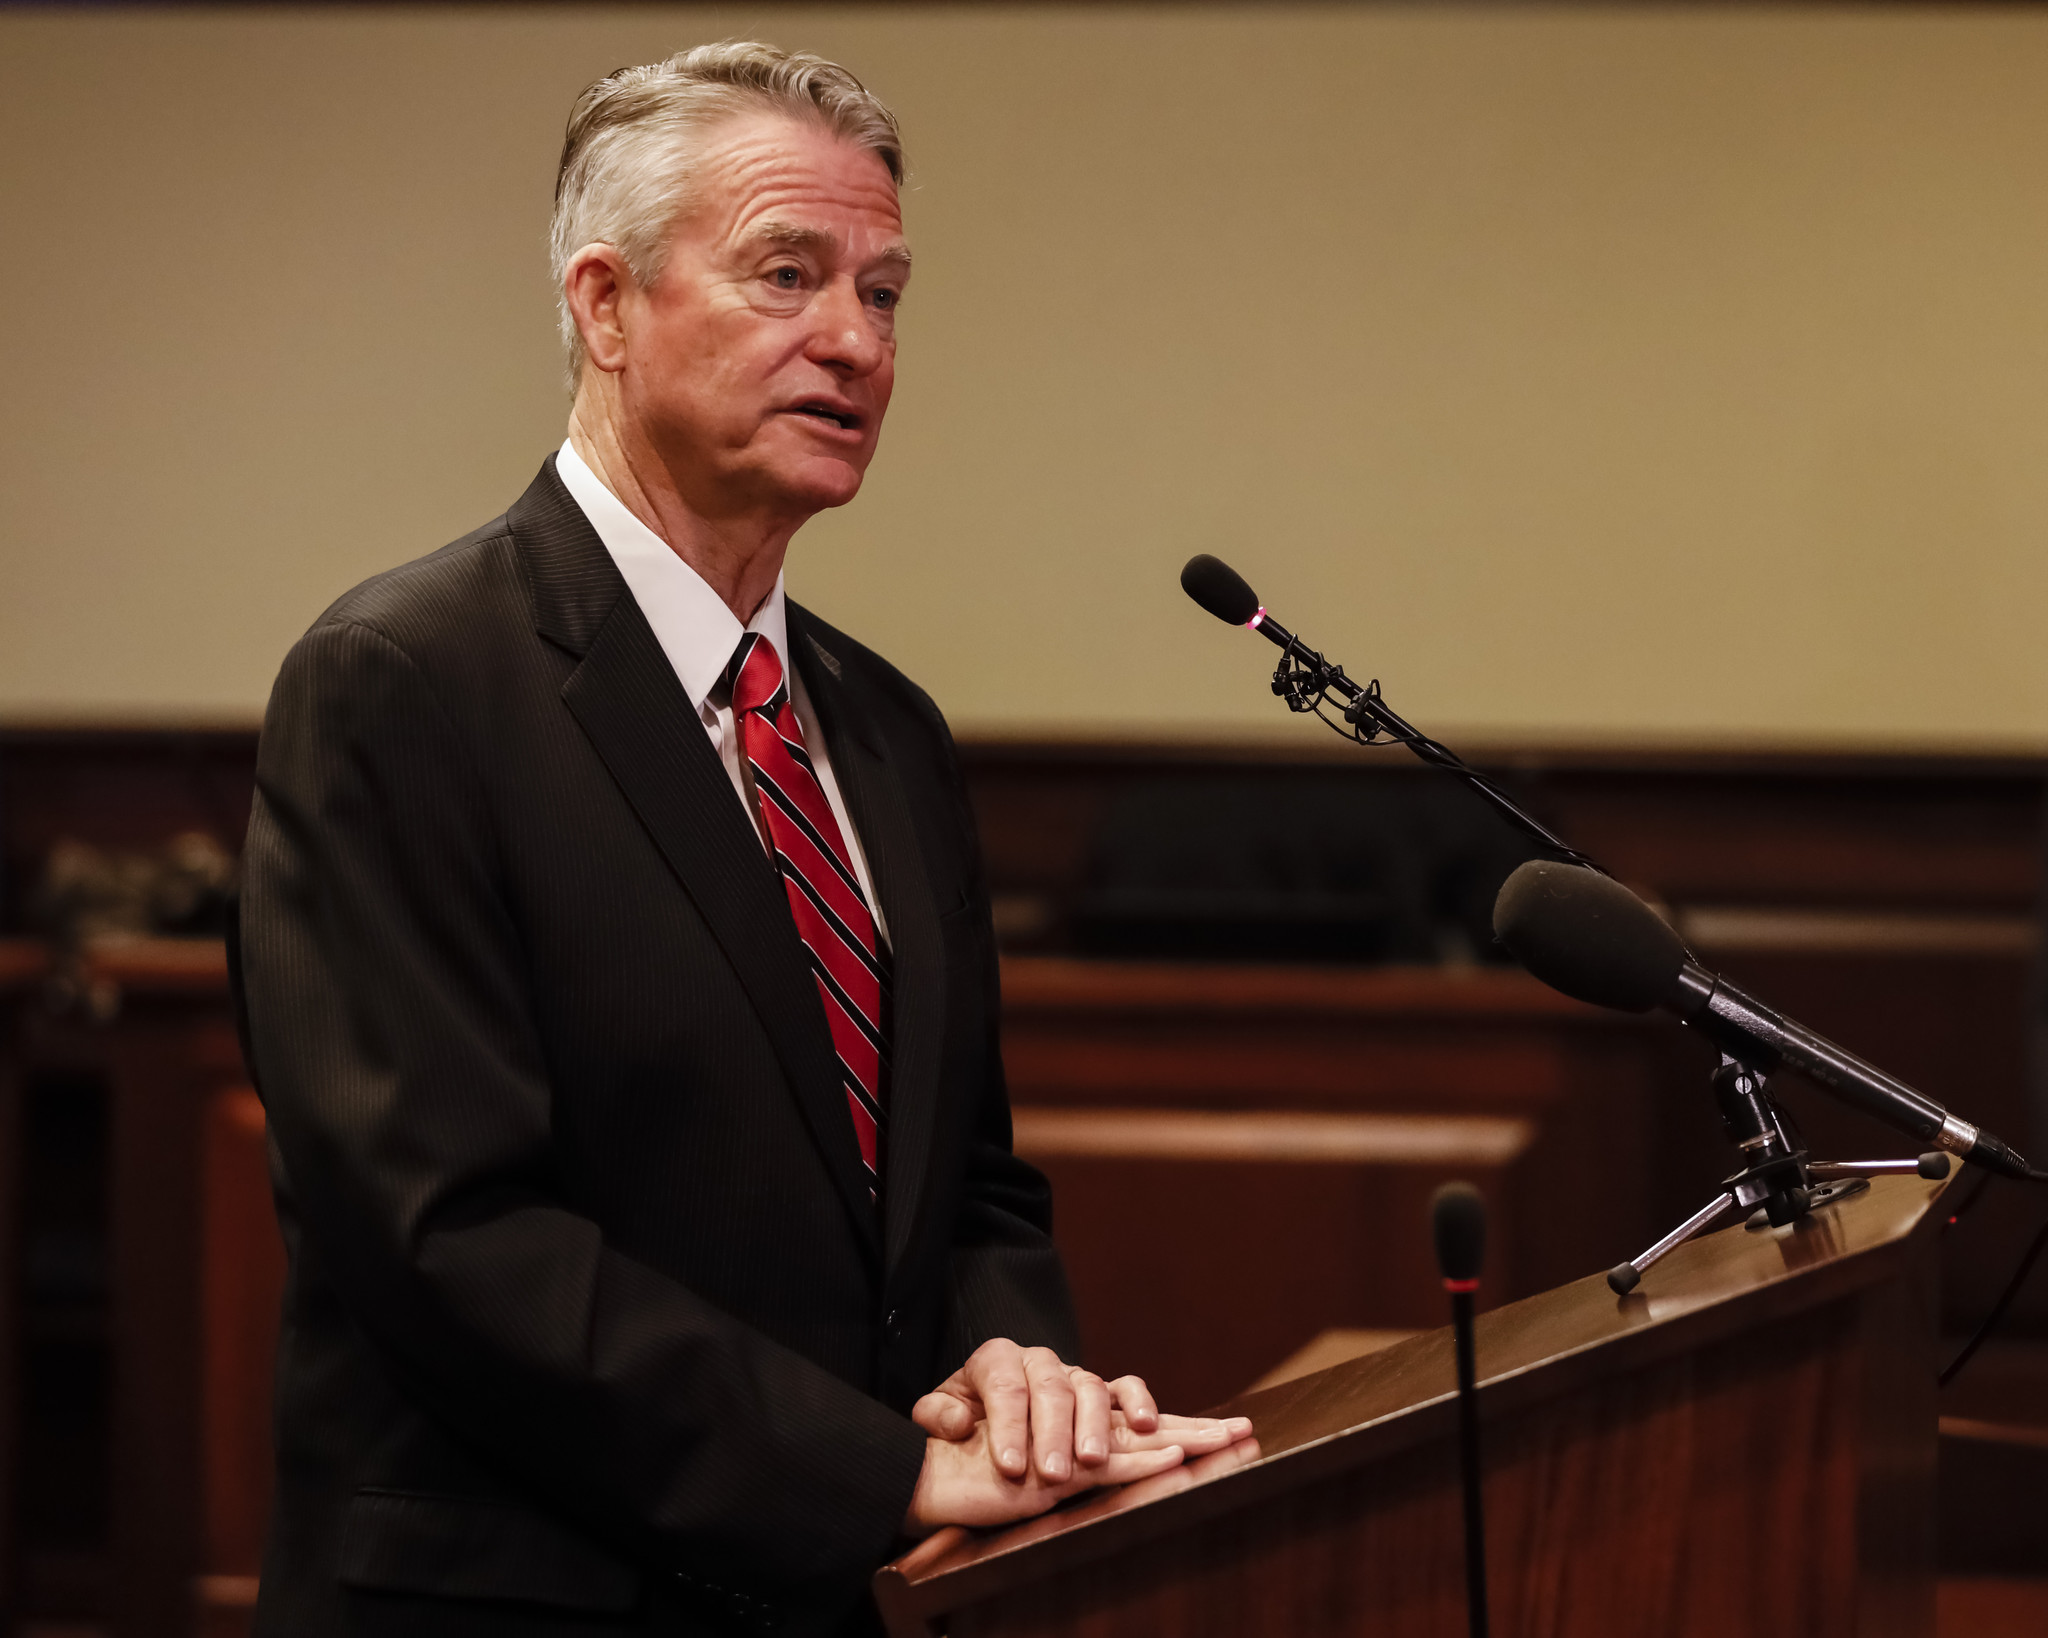 Idaho governor signs unconstitutional law limiting trans rights